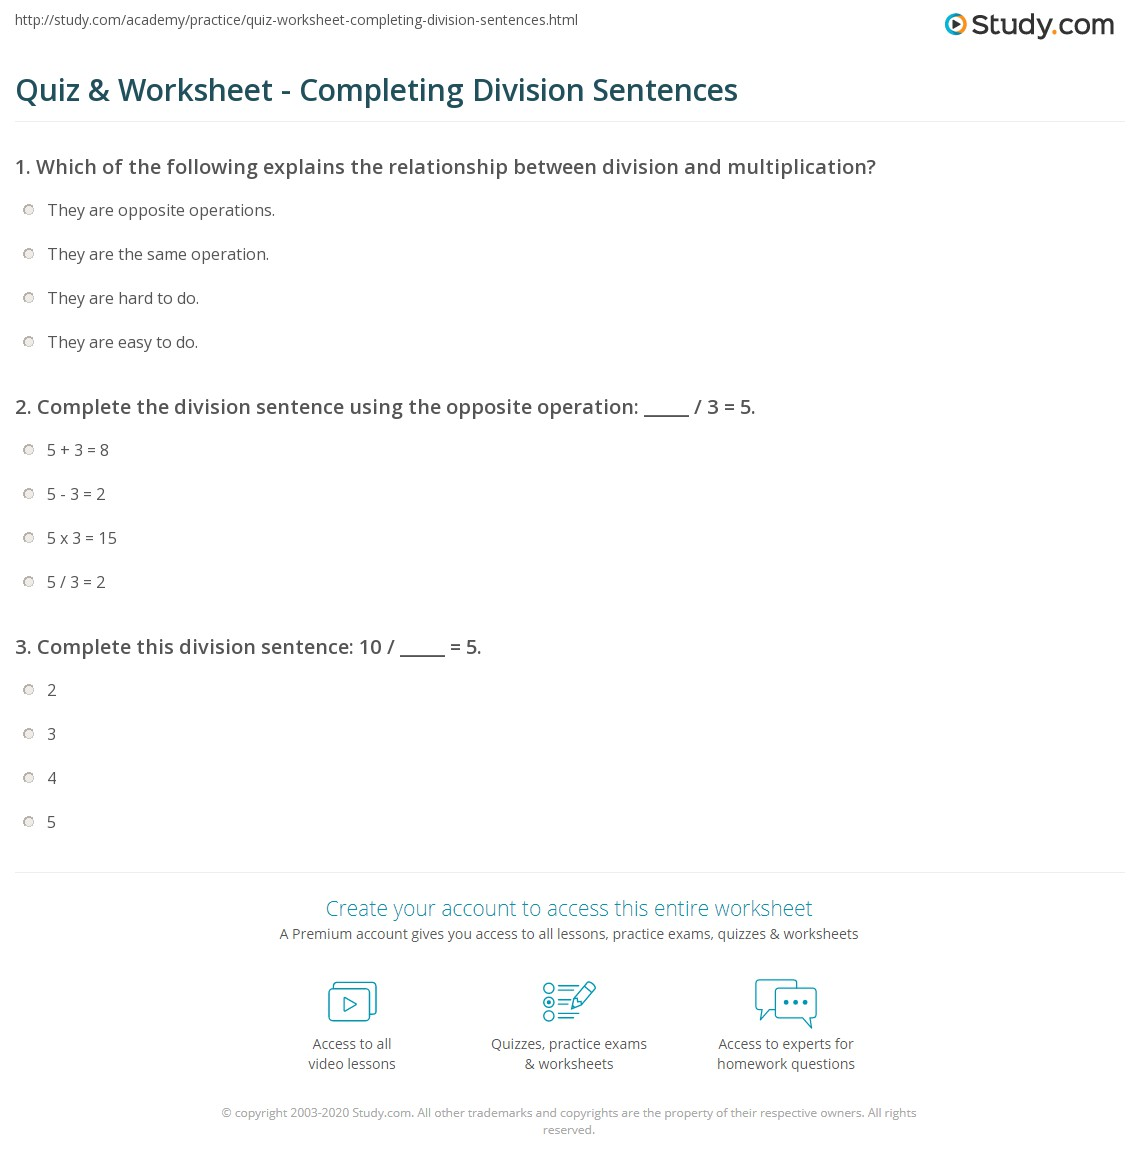 Quiz Worksheet Completing Division Sentences – Multiplying and Dividing Decimals by Powers of 10 Worksheet